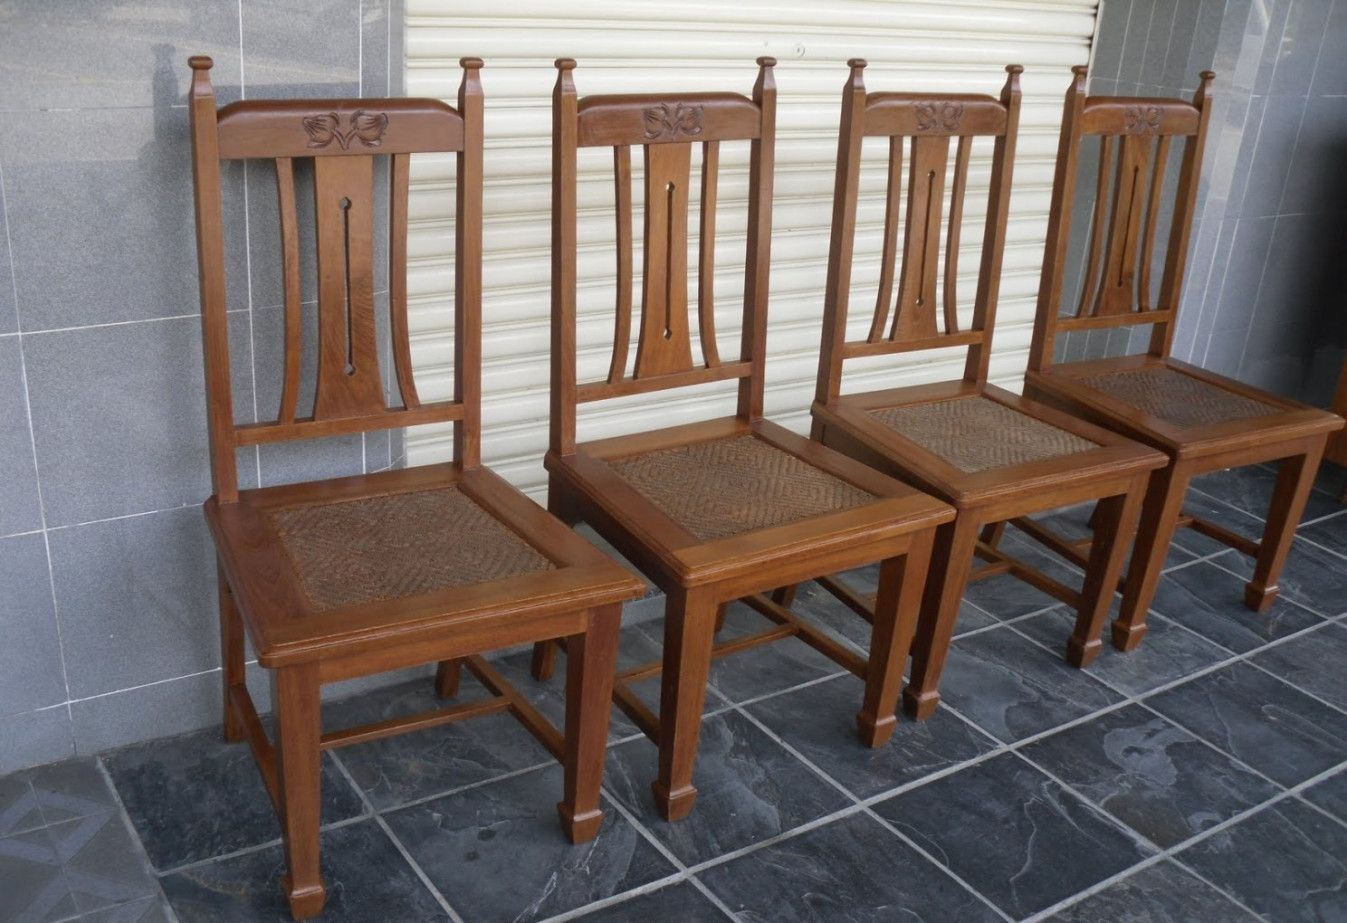 77+ Antique Oak Dining Chairs for Sale - Modern Used Furniture Check more  at http - 77+ Antique Oak Dining Chairs For Sale - Modern Used Furniture Check